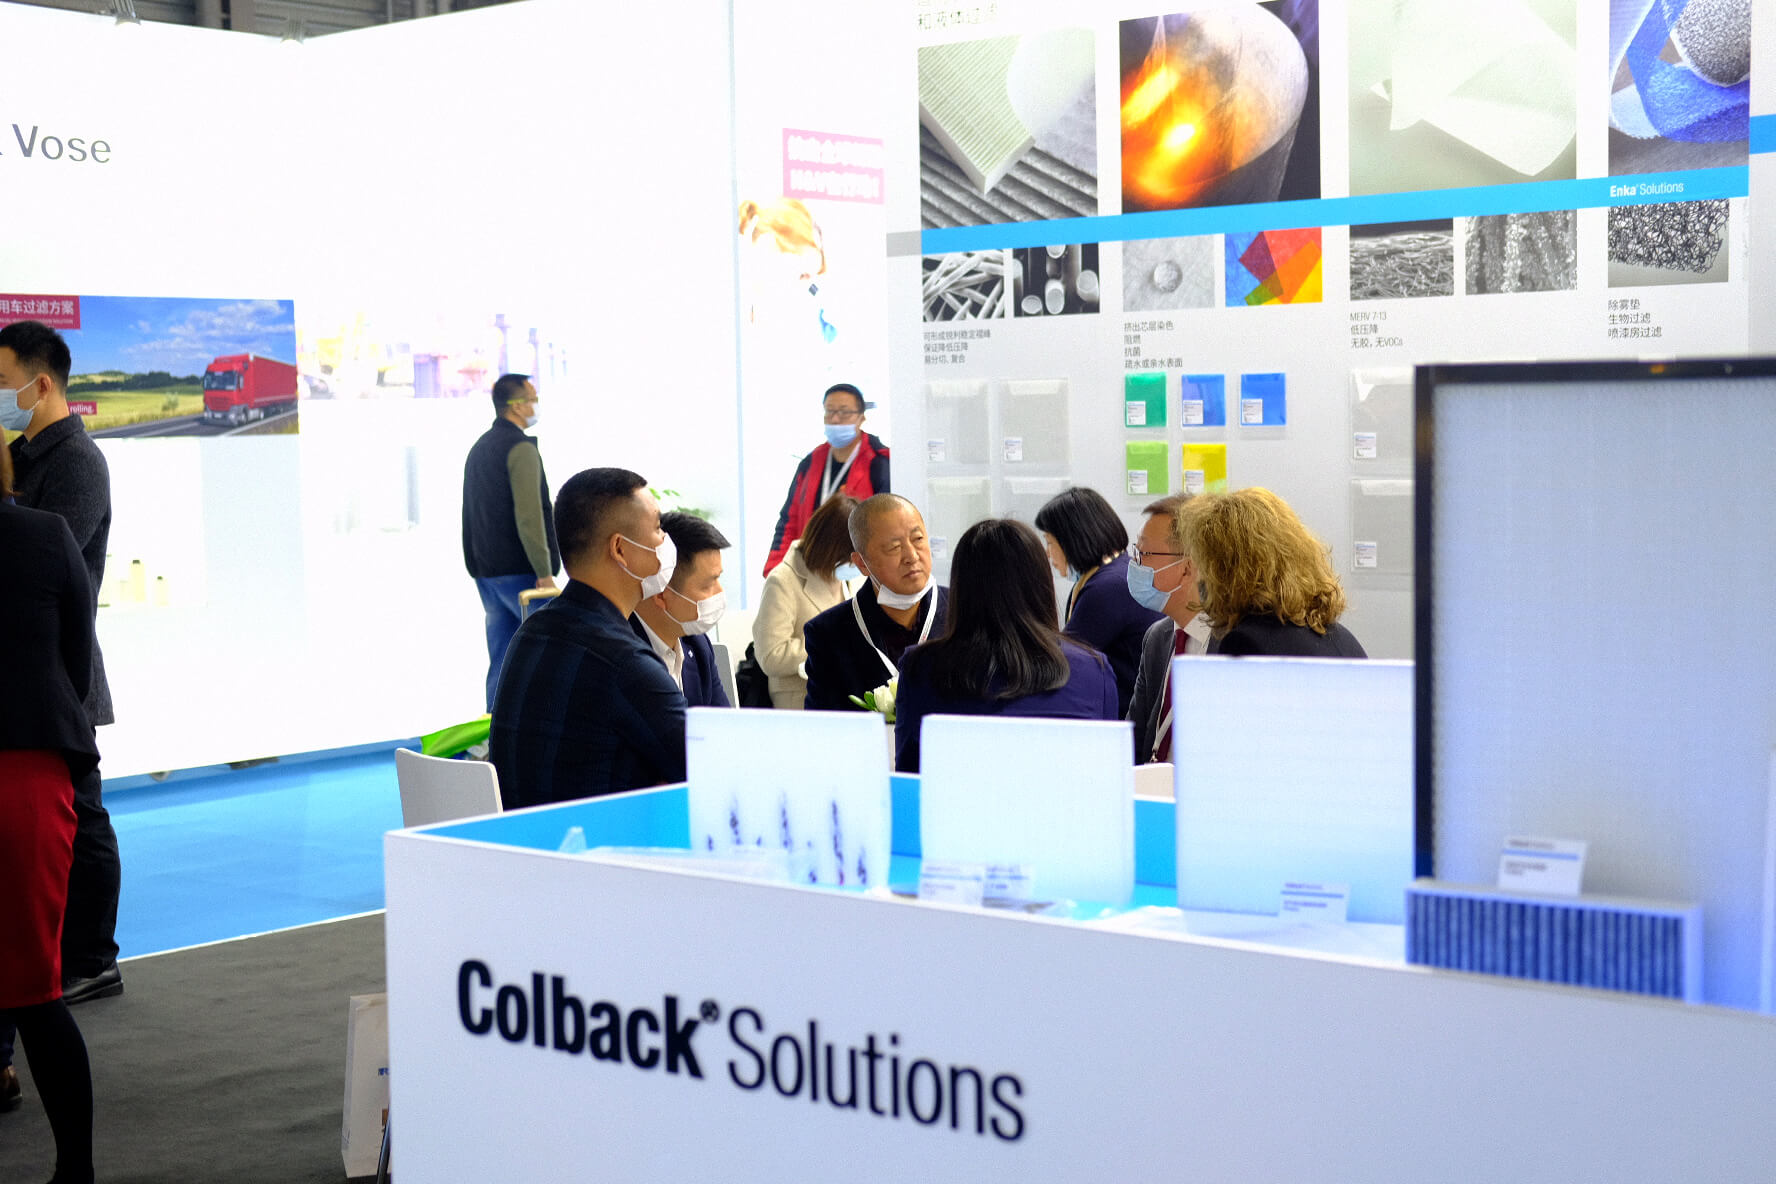 Filtration and separation materials trade show Colback Solutions by Low & Bonar